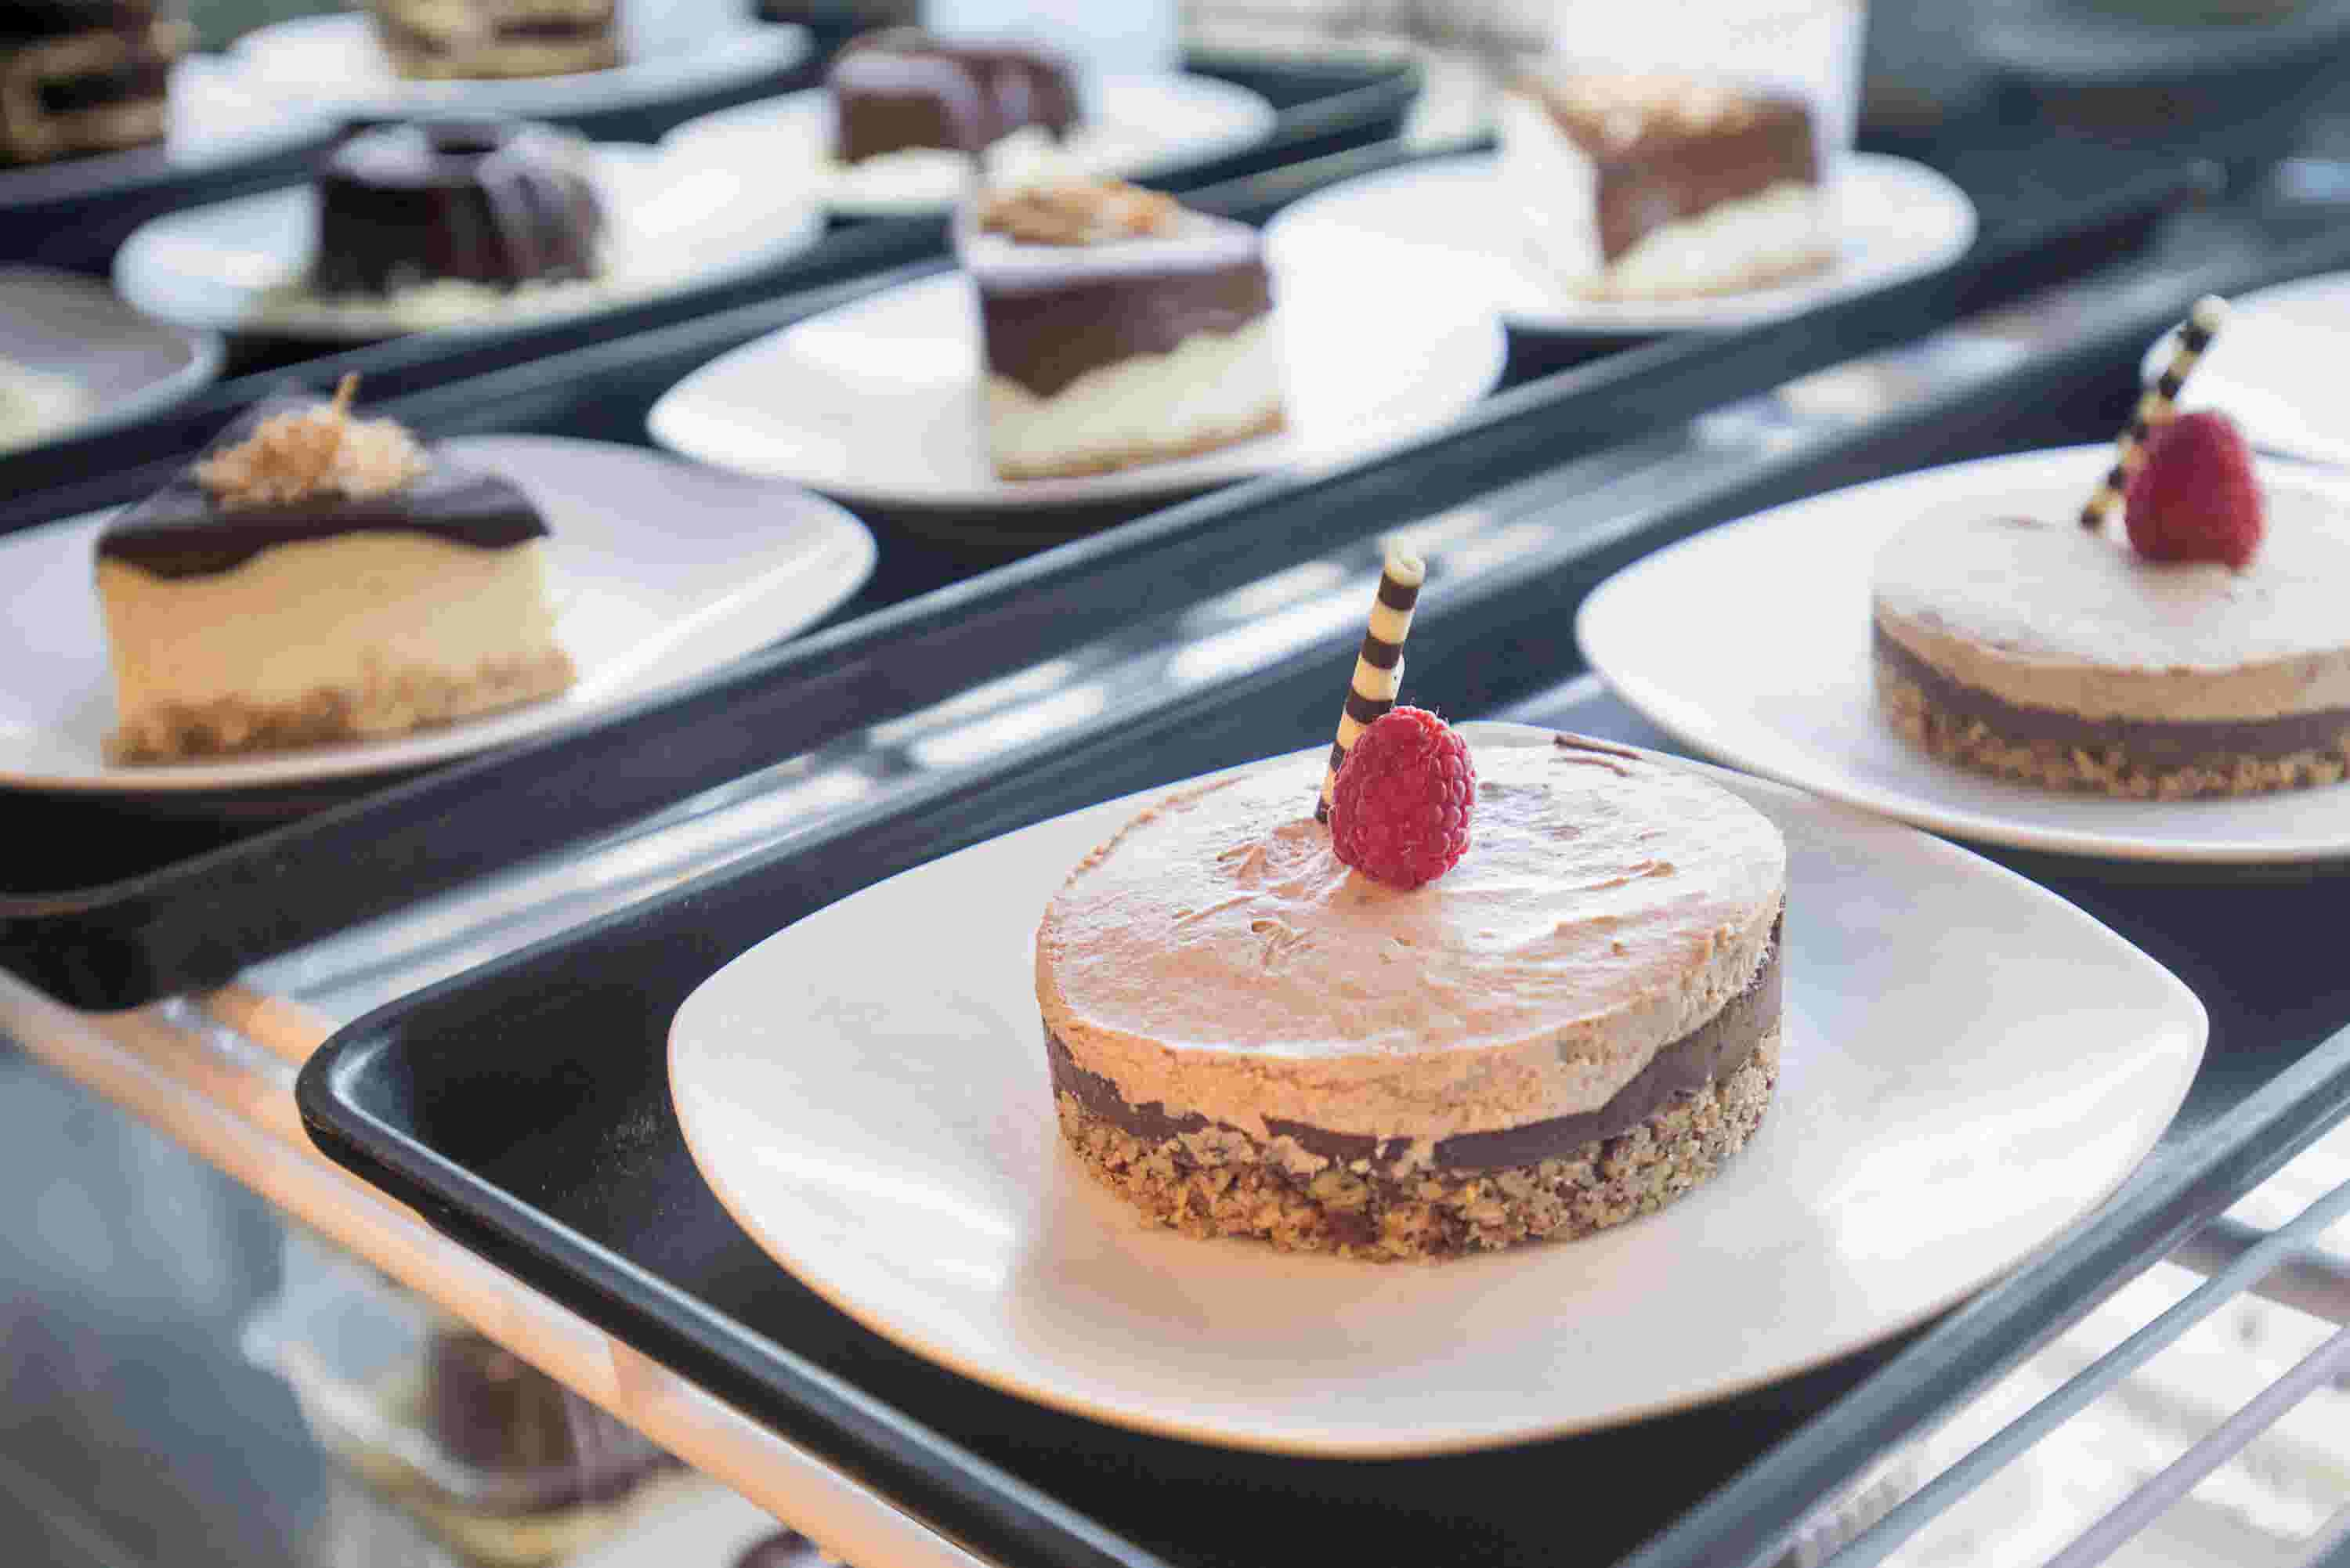 Craft Gourmet Bakery And Gelato Shop In Pensacola Ran By Longtime Local Pastry Chef